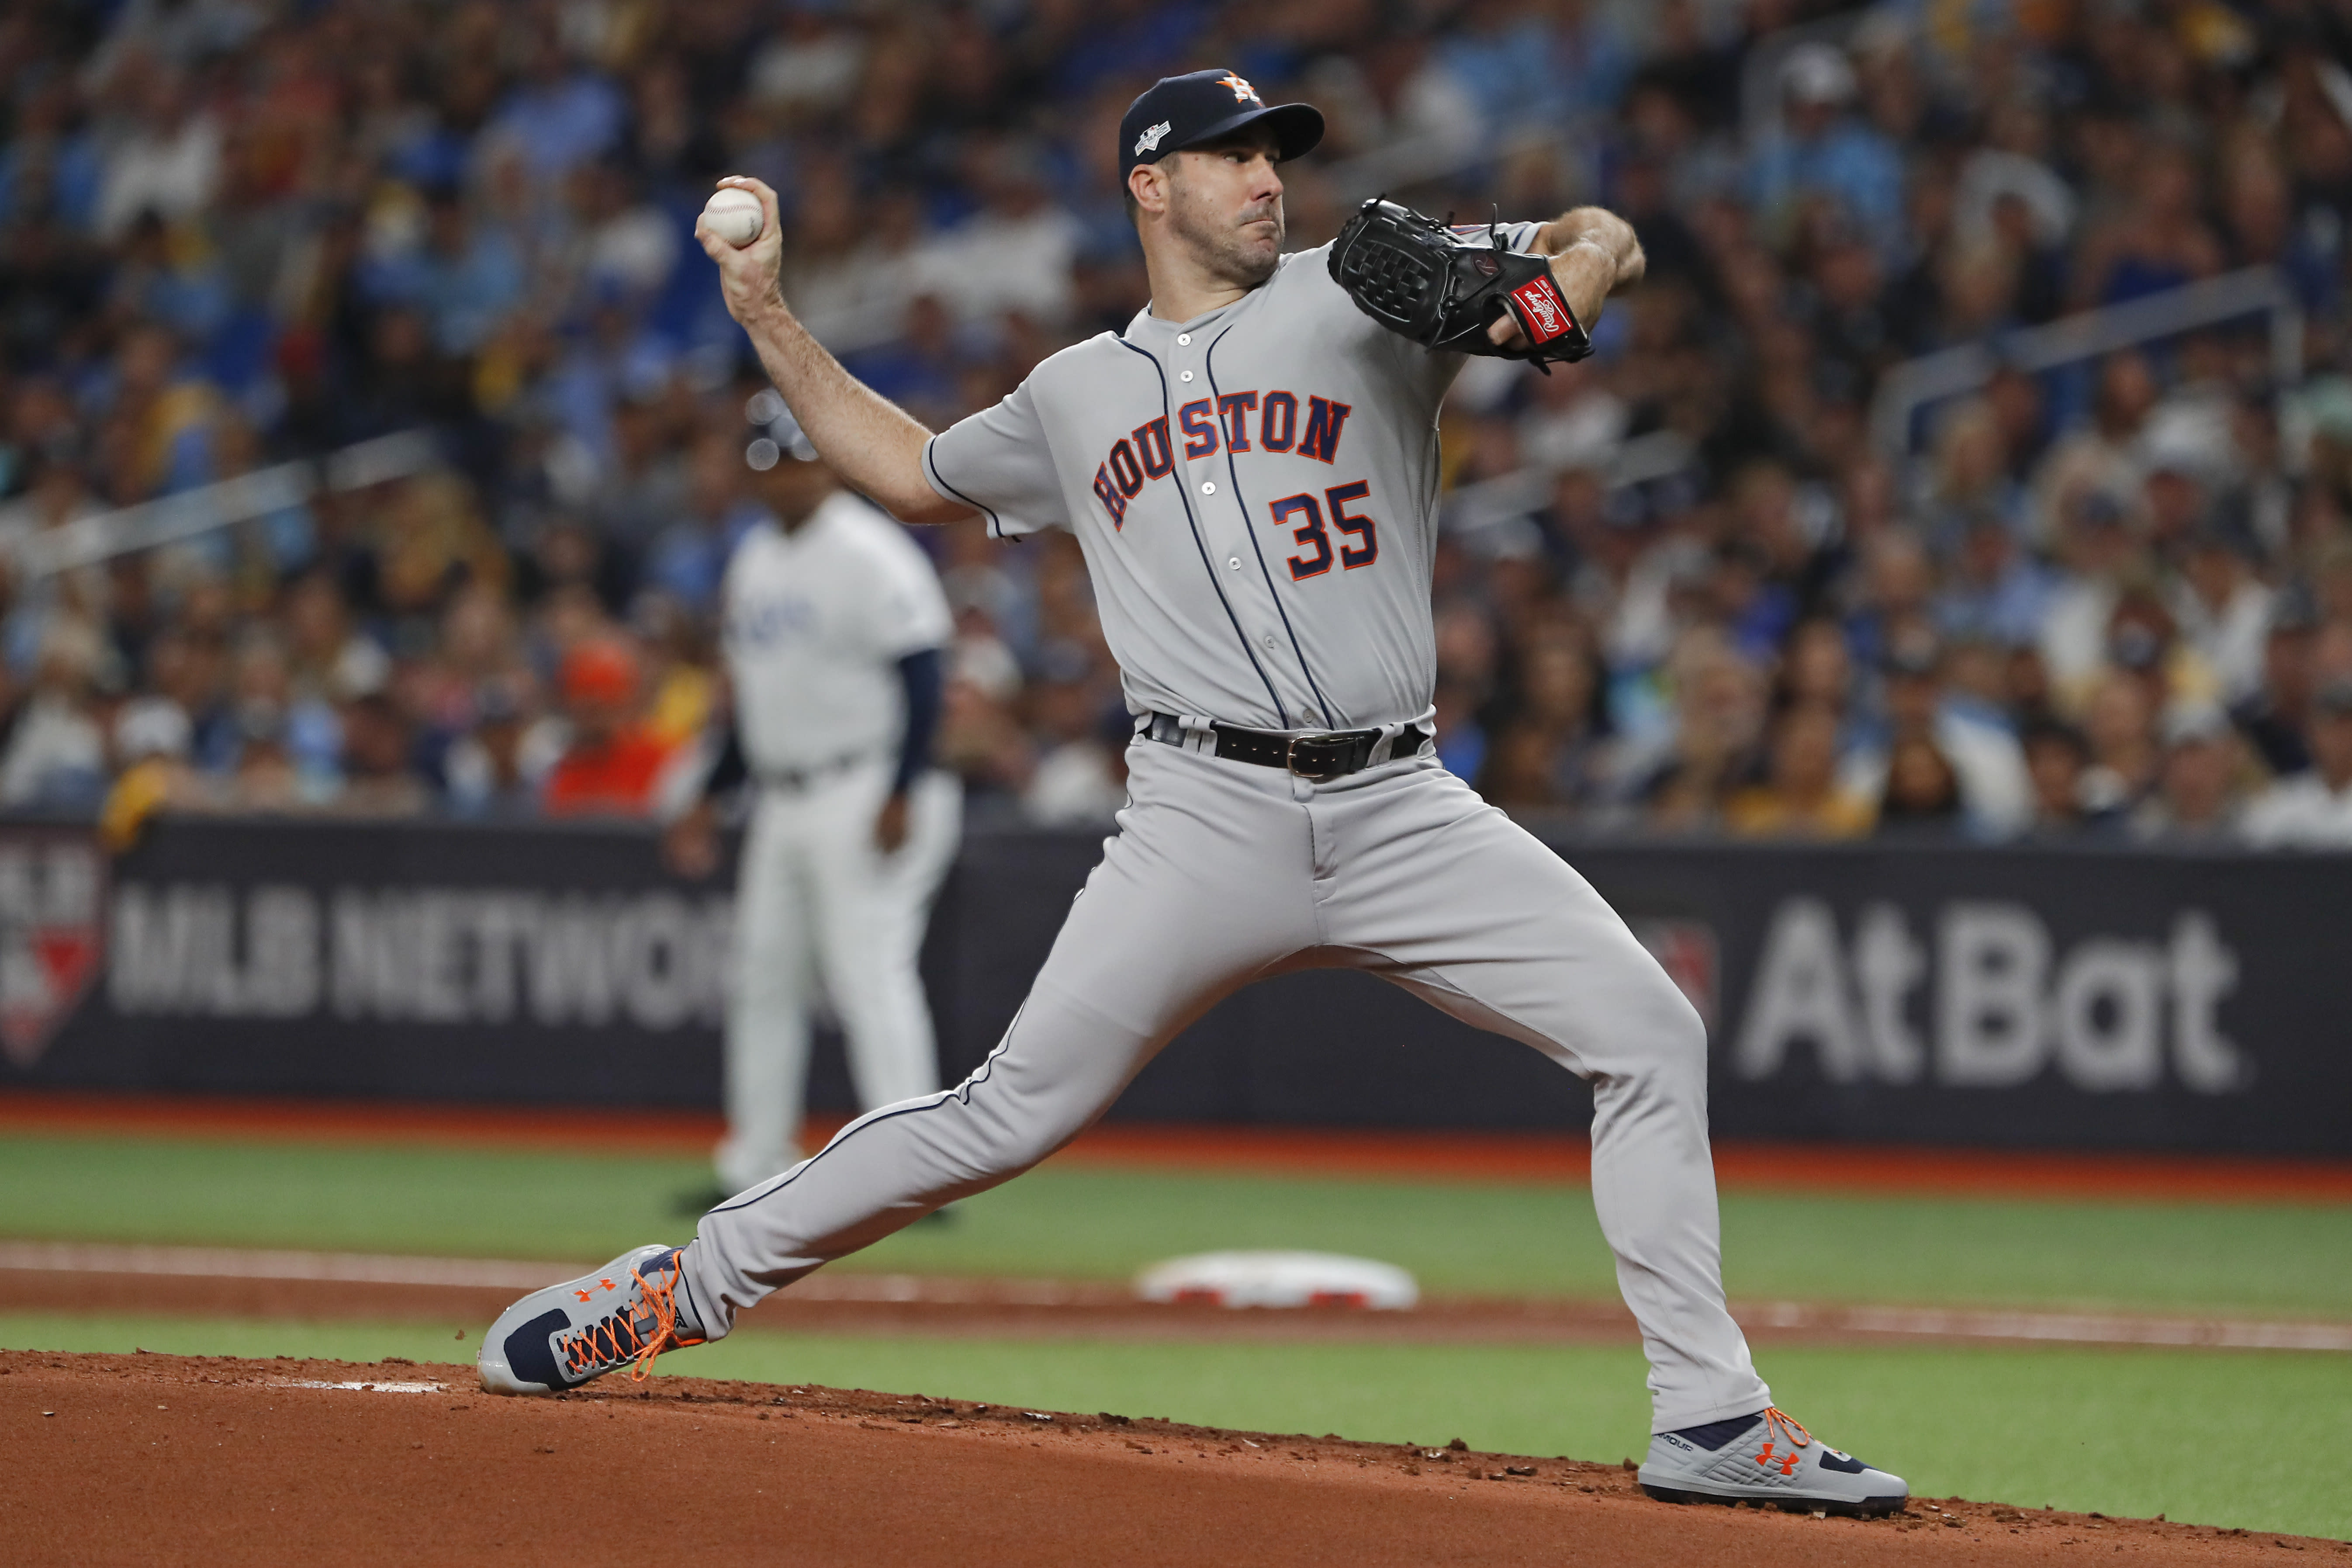 Houston Astros' Justin Verlander pitches against the Tampa Bay Rays in the first inning of Game 4 of a baseball American League Division Series, Tuesday, Oct. 8, 2019, in St. Petersburg, Fla. (AP Photo/Scott Audette)